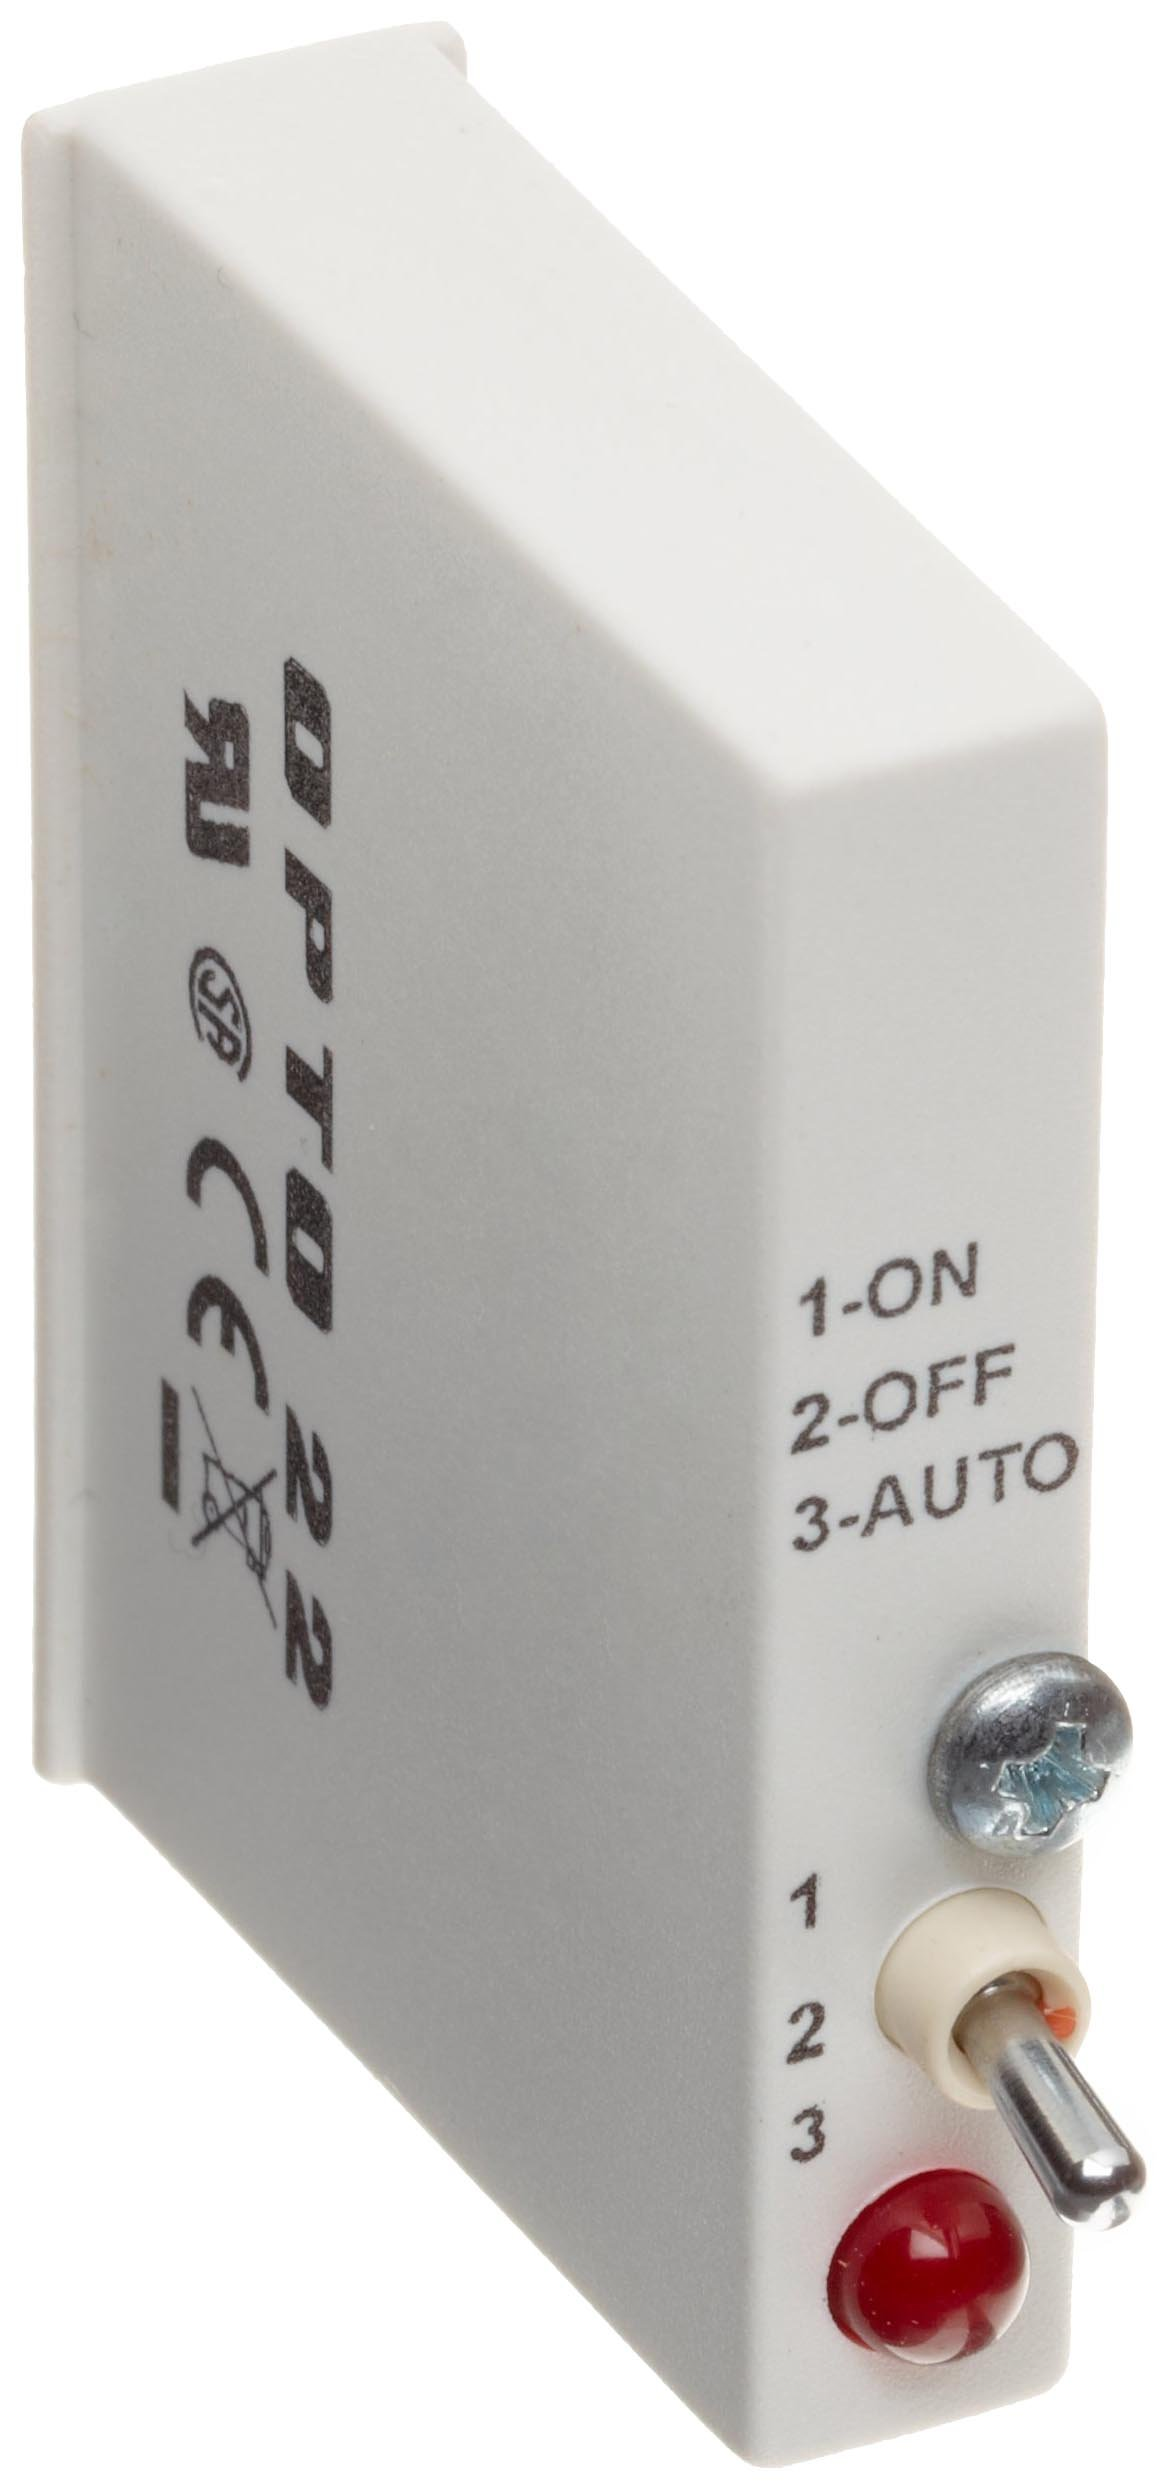 Opto 22 G4IDC5MA G4 DC Input with Manual/Auto Switch, 10-32 VDC, 5 VDC Logic, 4000 Volt I/O Isolation, 5ms Turn-On/Off Time, 25 Input Current